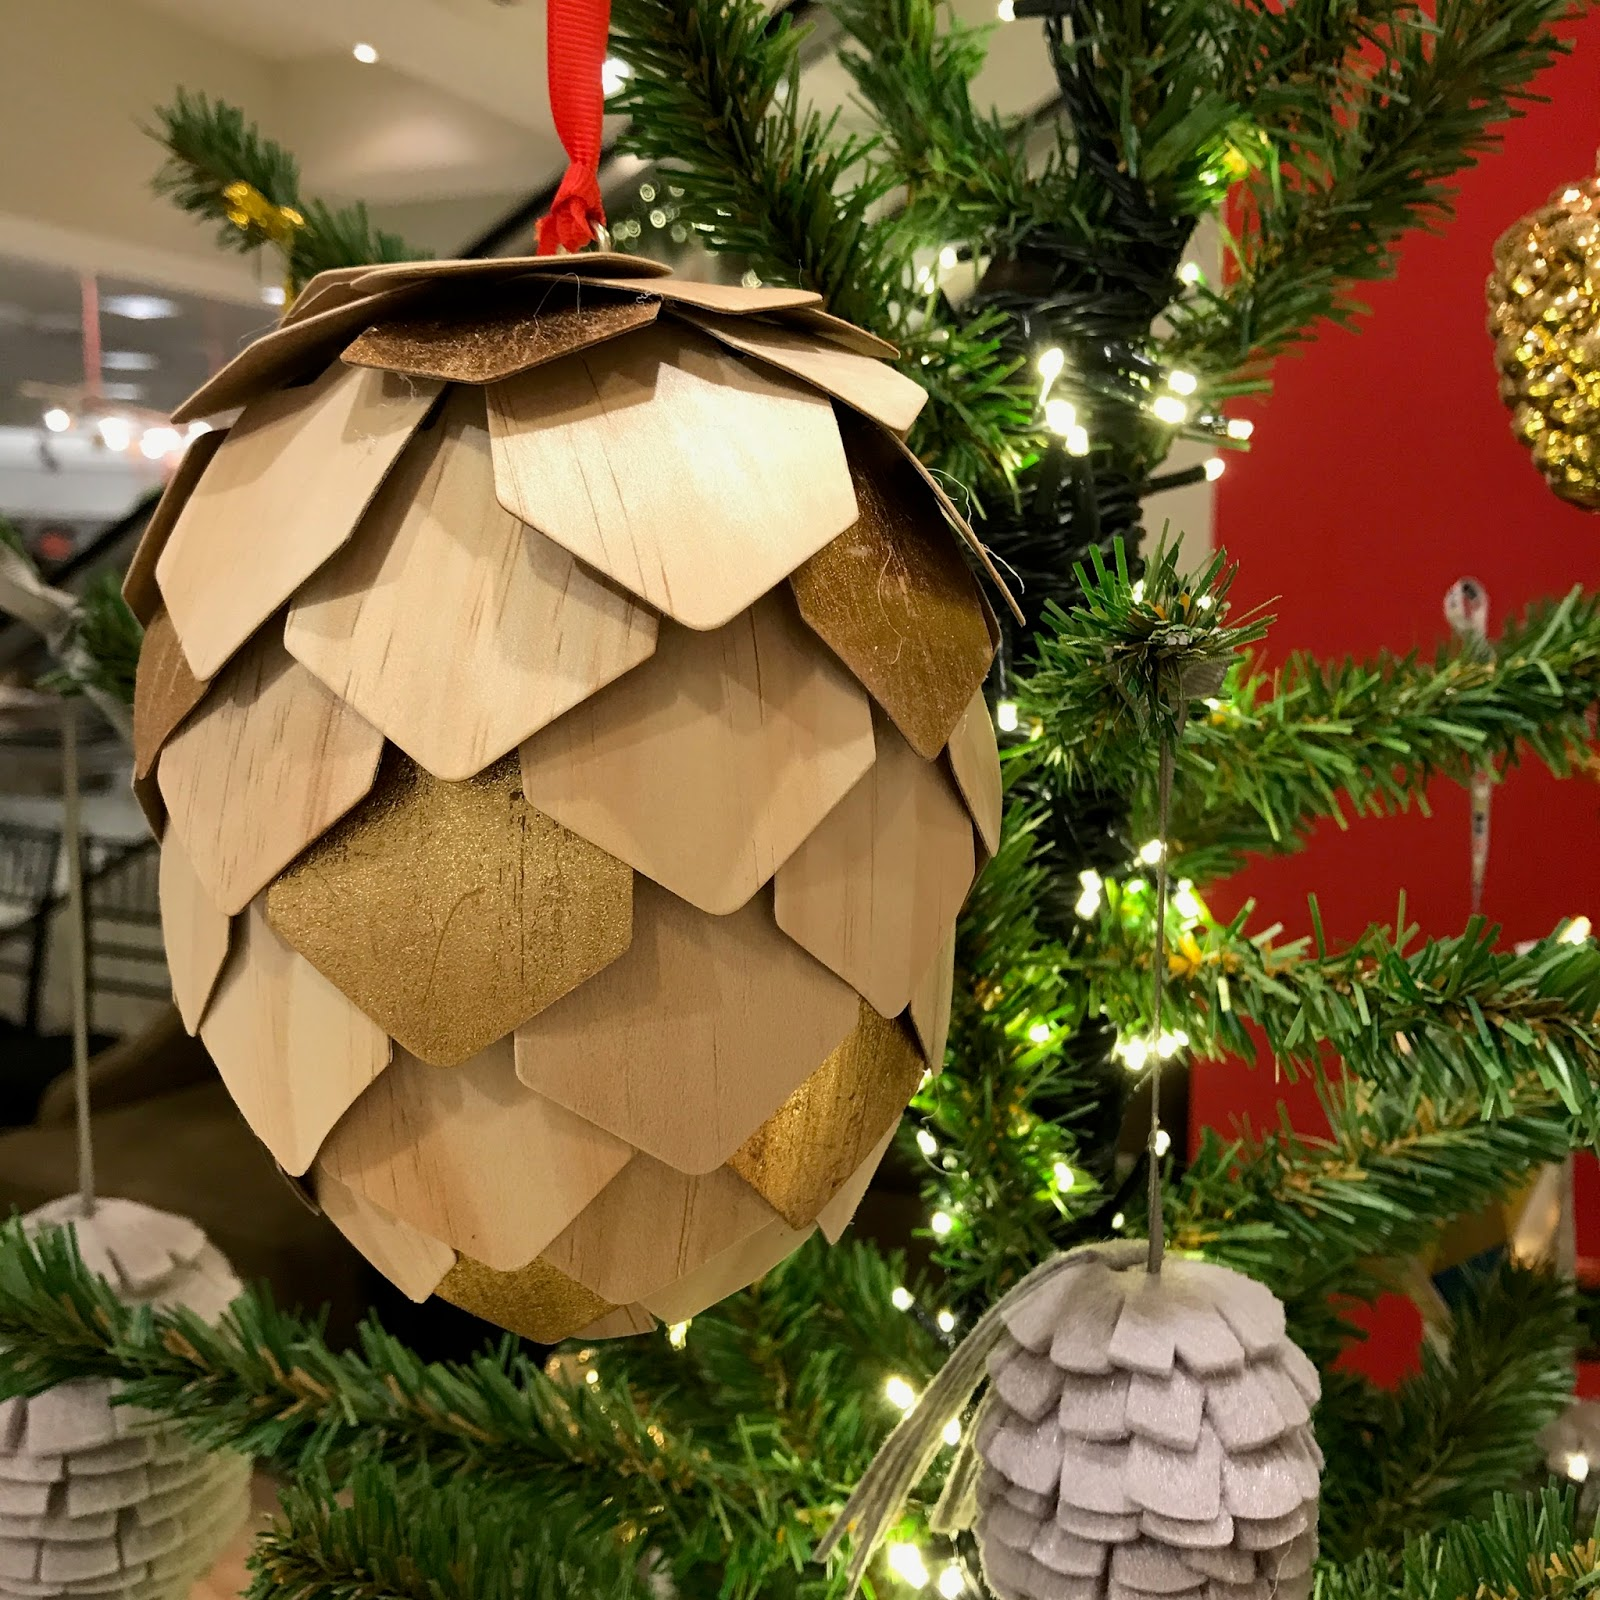 Nordstrom Had Some Interesting Wooden And Felt Pine Cones.